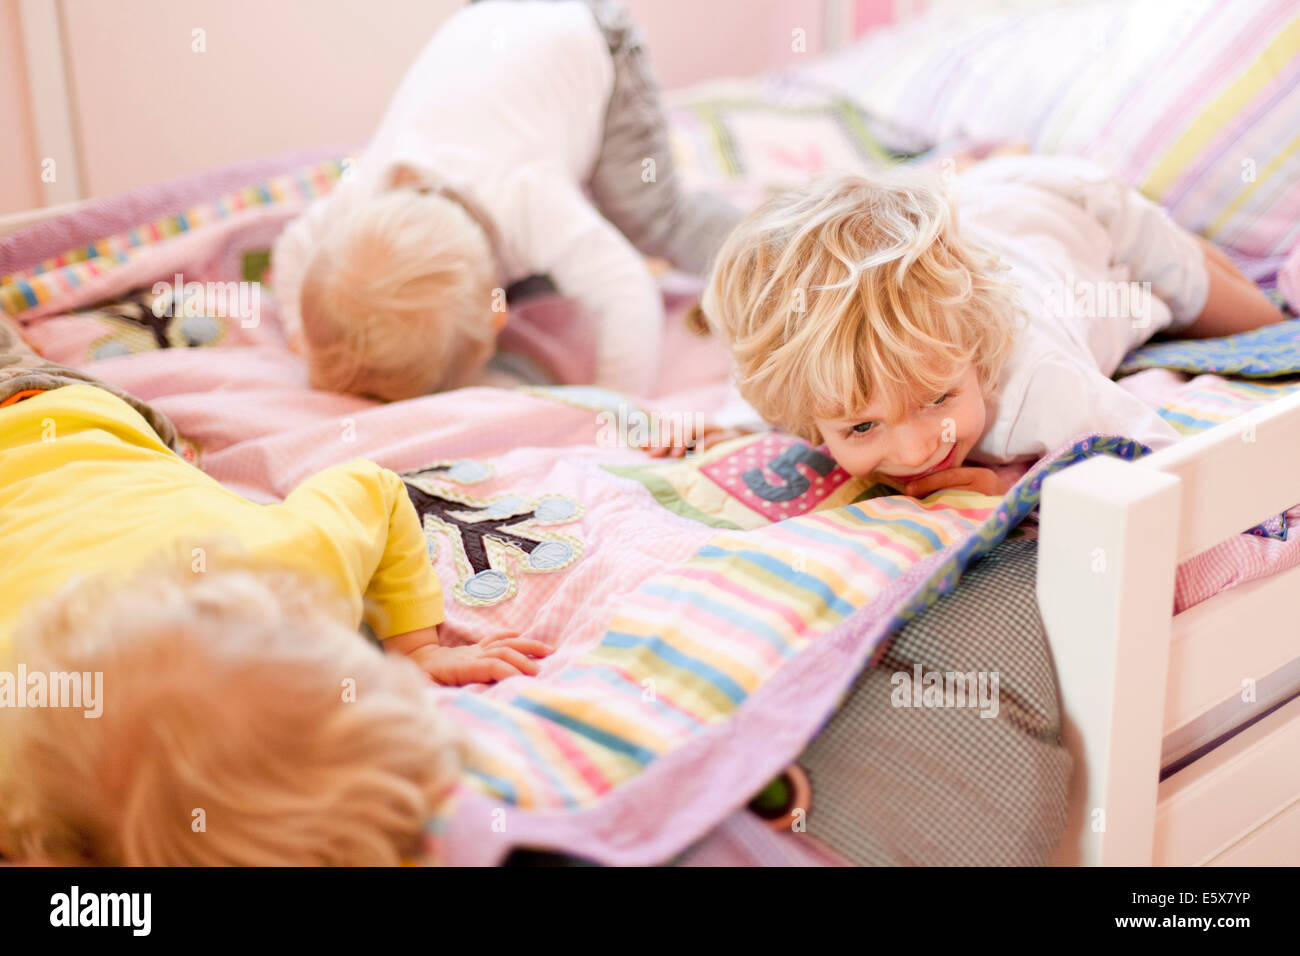 Three young brothers crawling face down on bed - Stock Image